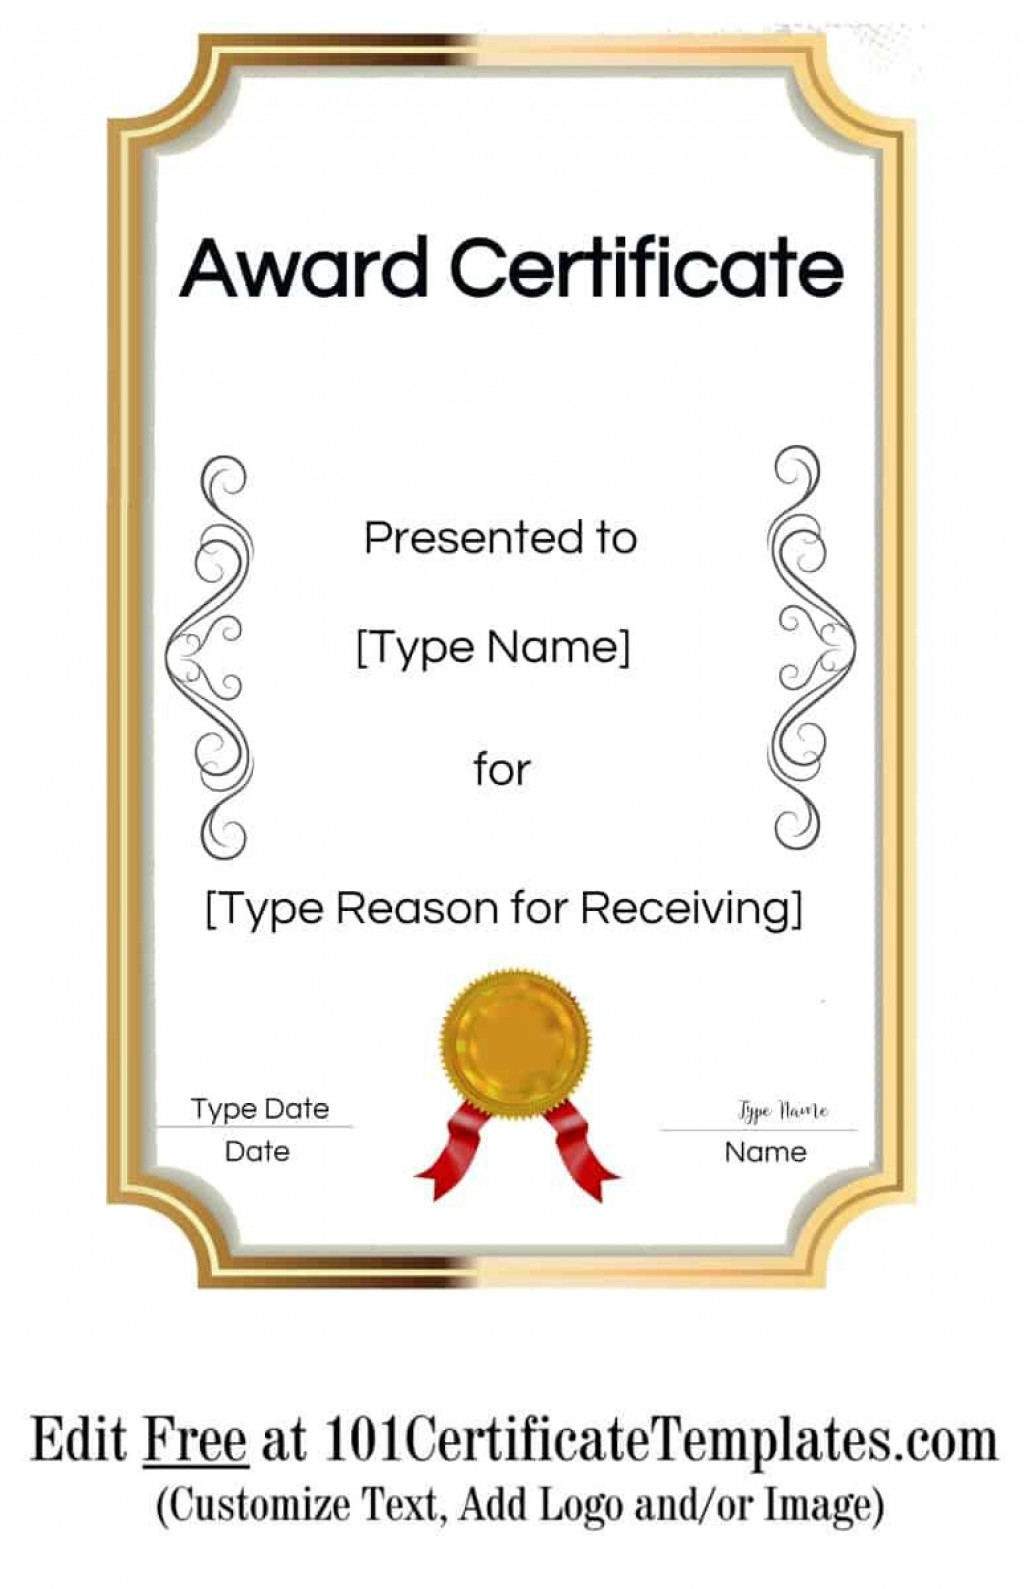 006 Unforgettable Certificate Of Achievement Template Free Photo  Award Download WordLarge